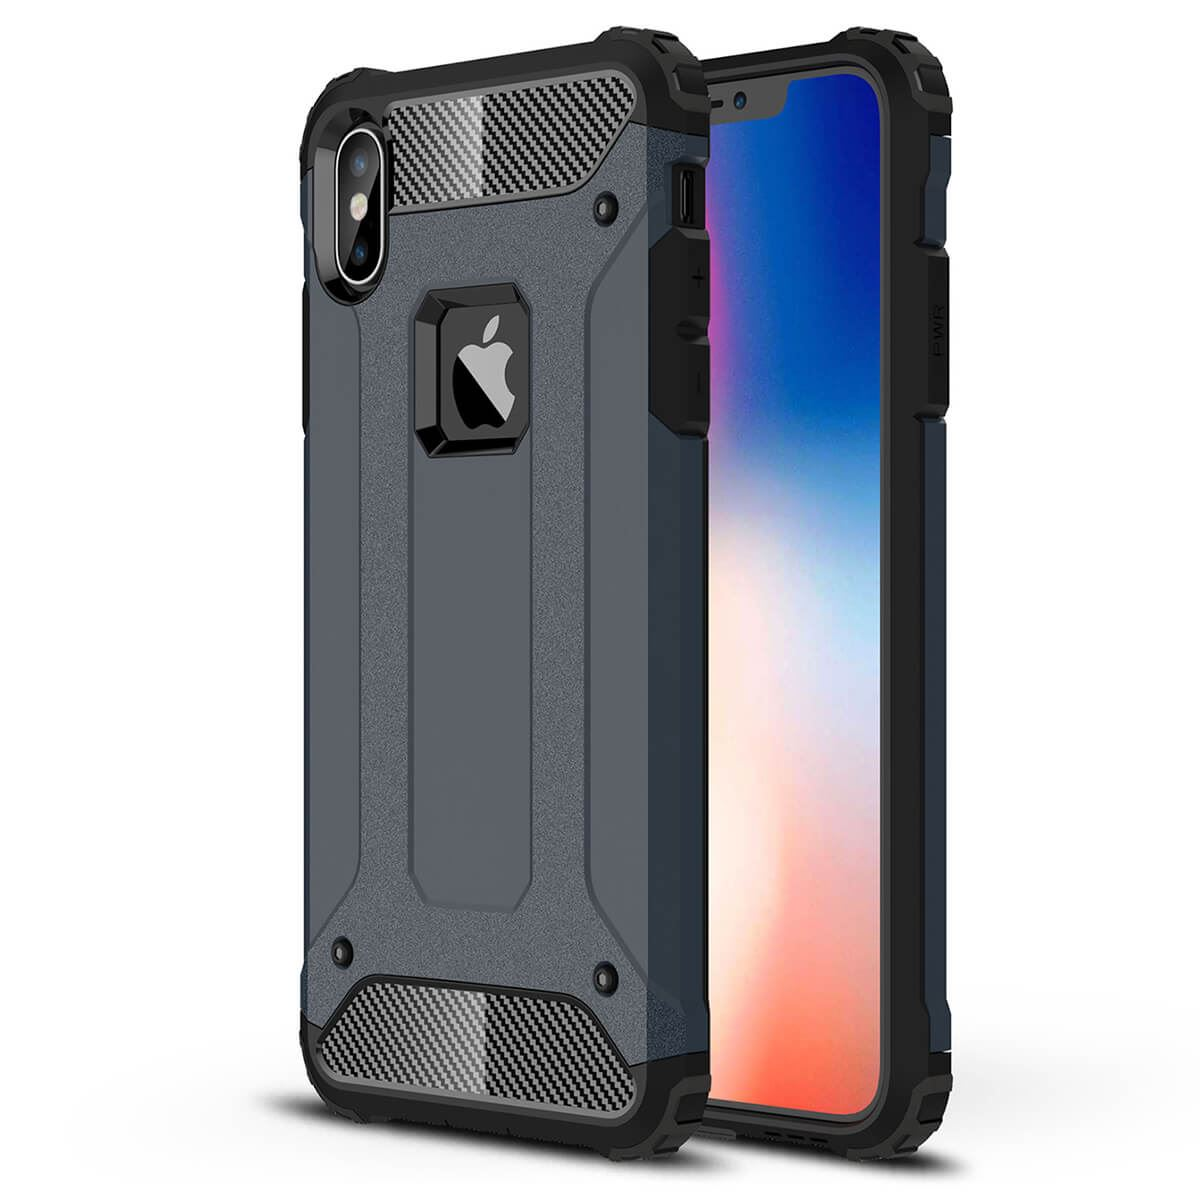 Shockproof-Bumper-Case-For-Apple-iPhone-10-X-8-7-Plus-6s-5s-Hybrid-Armor-Rugged thumbnail 16